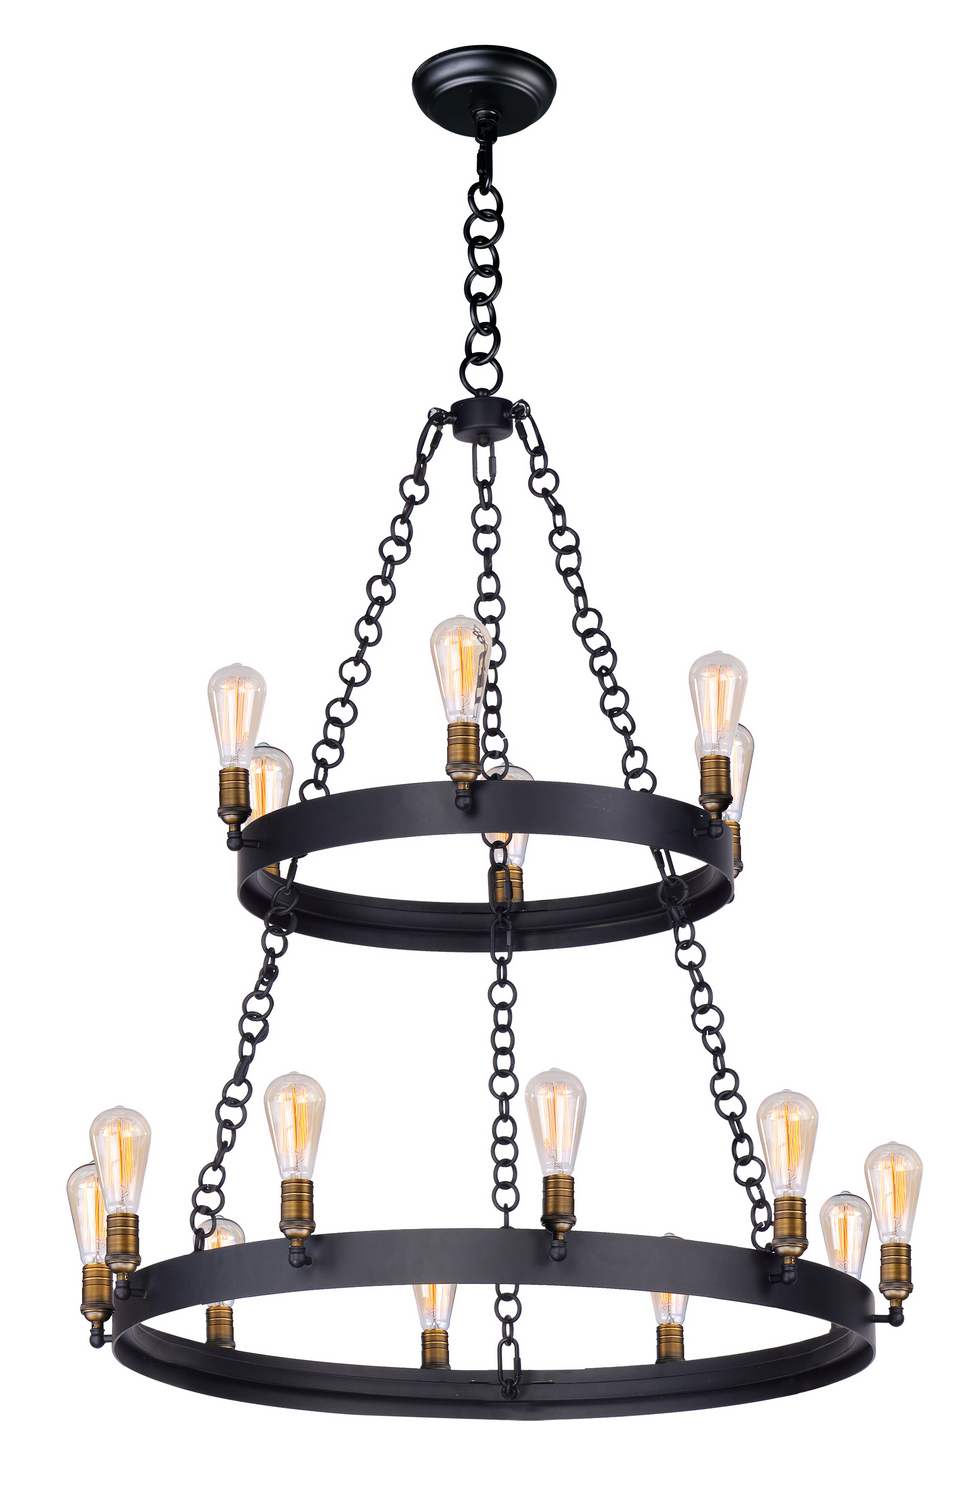 16 Light Chandelier from the Noble collection by Maxim 26277BKNABBUI